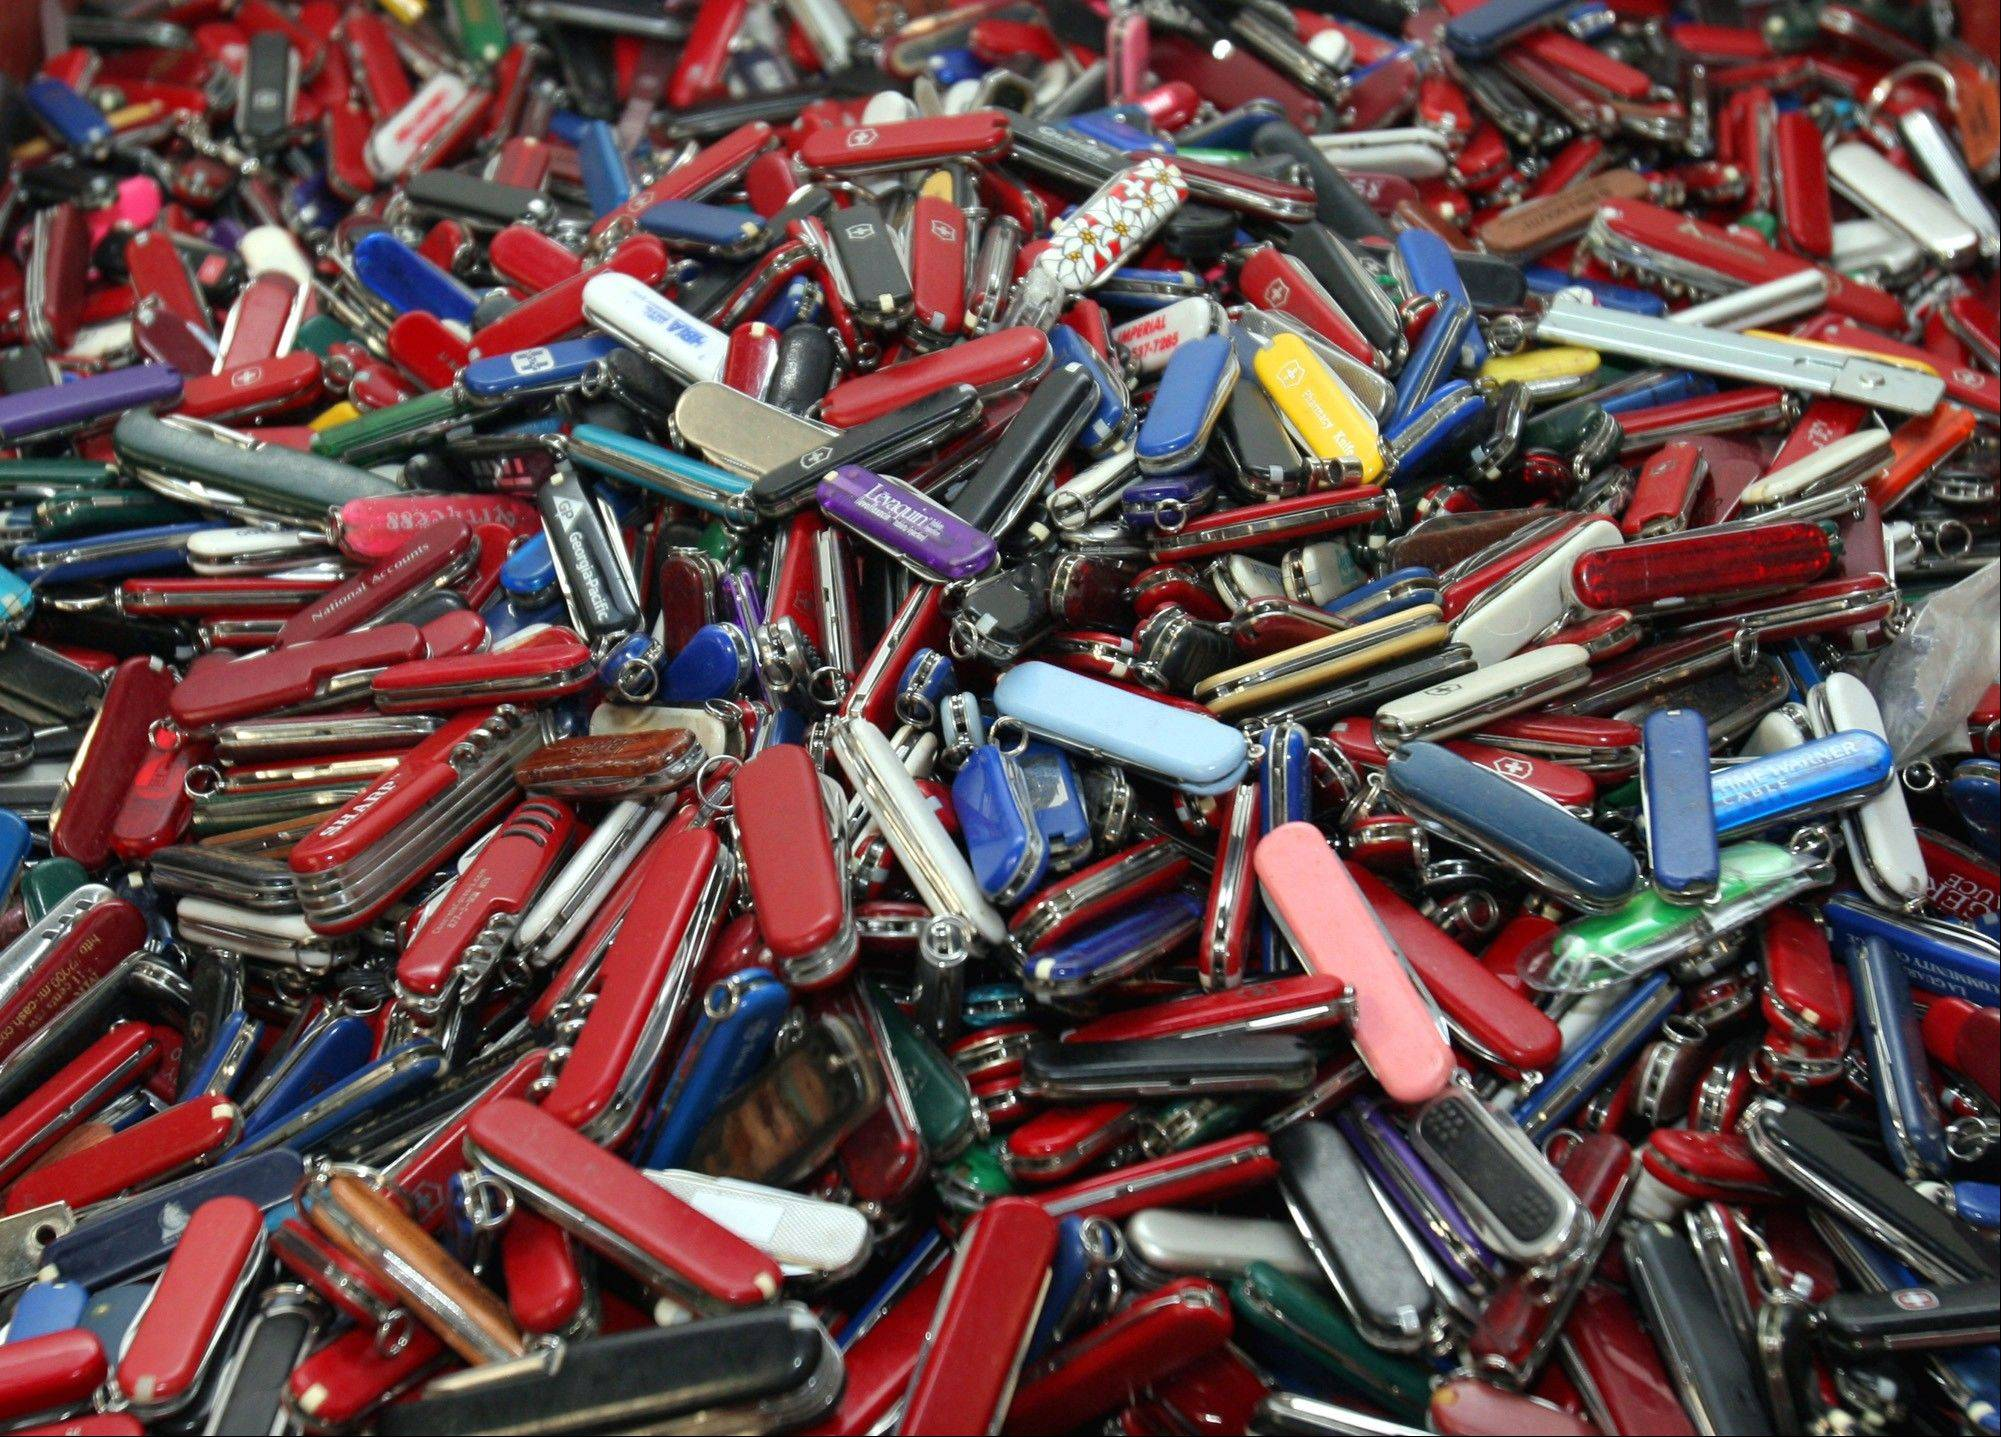 John Pistole, head of the Transportation Security Administration says he's dropping a proposal that would have let airline passengers carry small knives, souvenir bats, golf clubs and other sports equipment onto planes. The proposal had drawn fierce opposition.